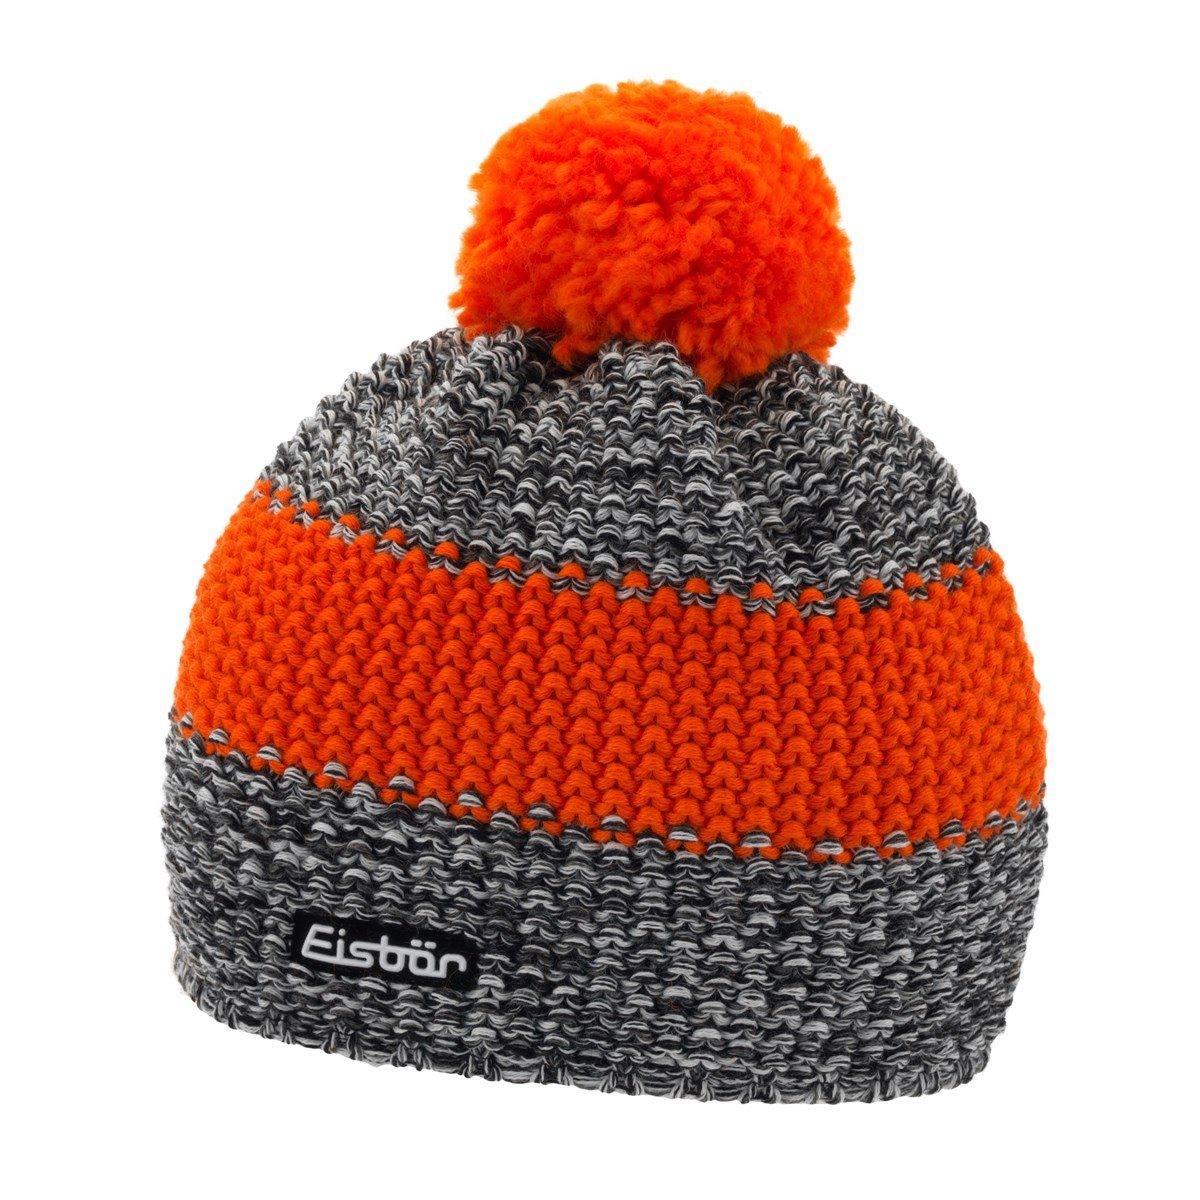 Eisbar Styler Mens Merino Bobble Hat 2018 Orange. 0 (Be the first to add a  review!) f985a338d2d